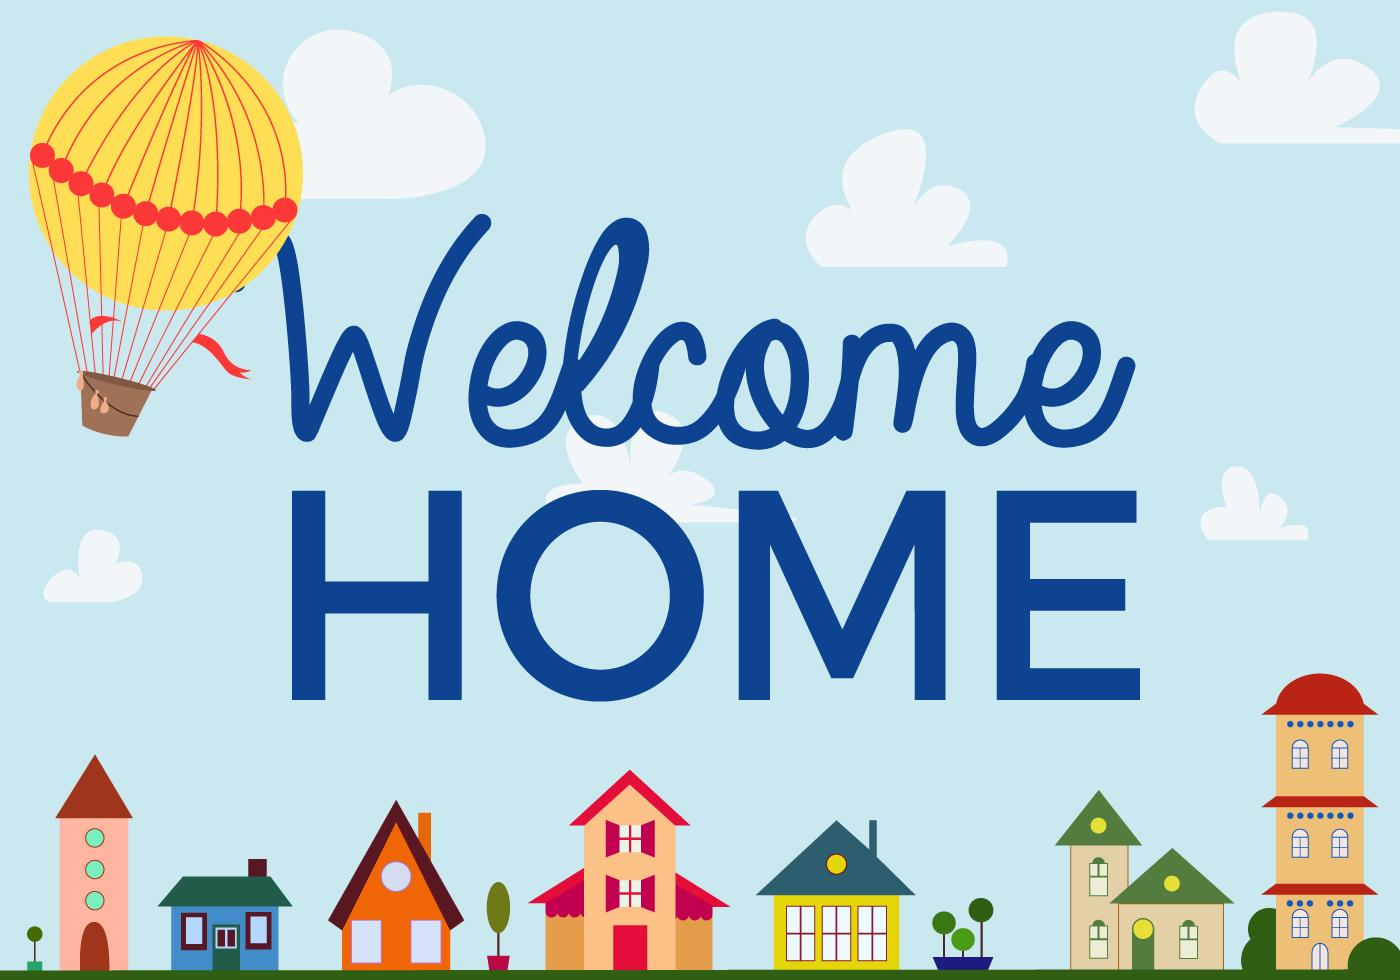 free-welcome-home-vector.jpg